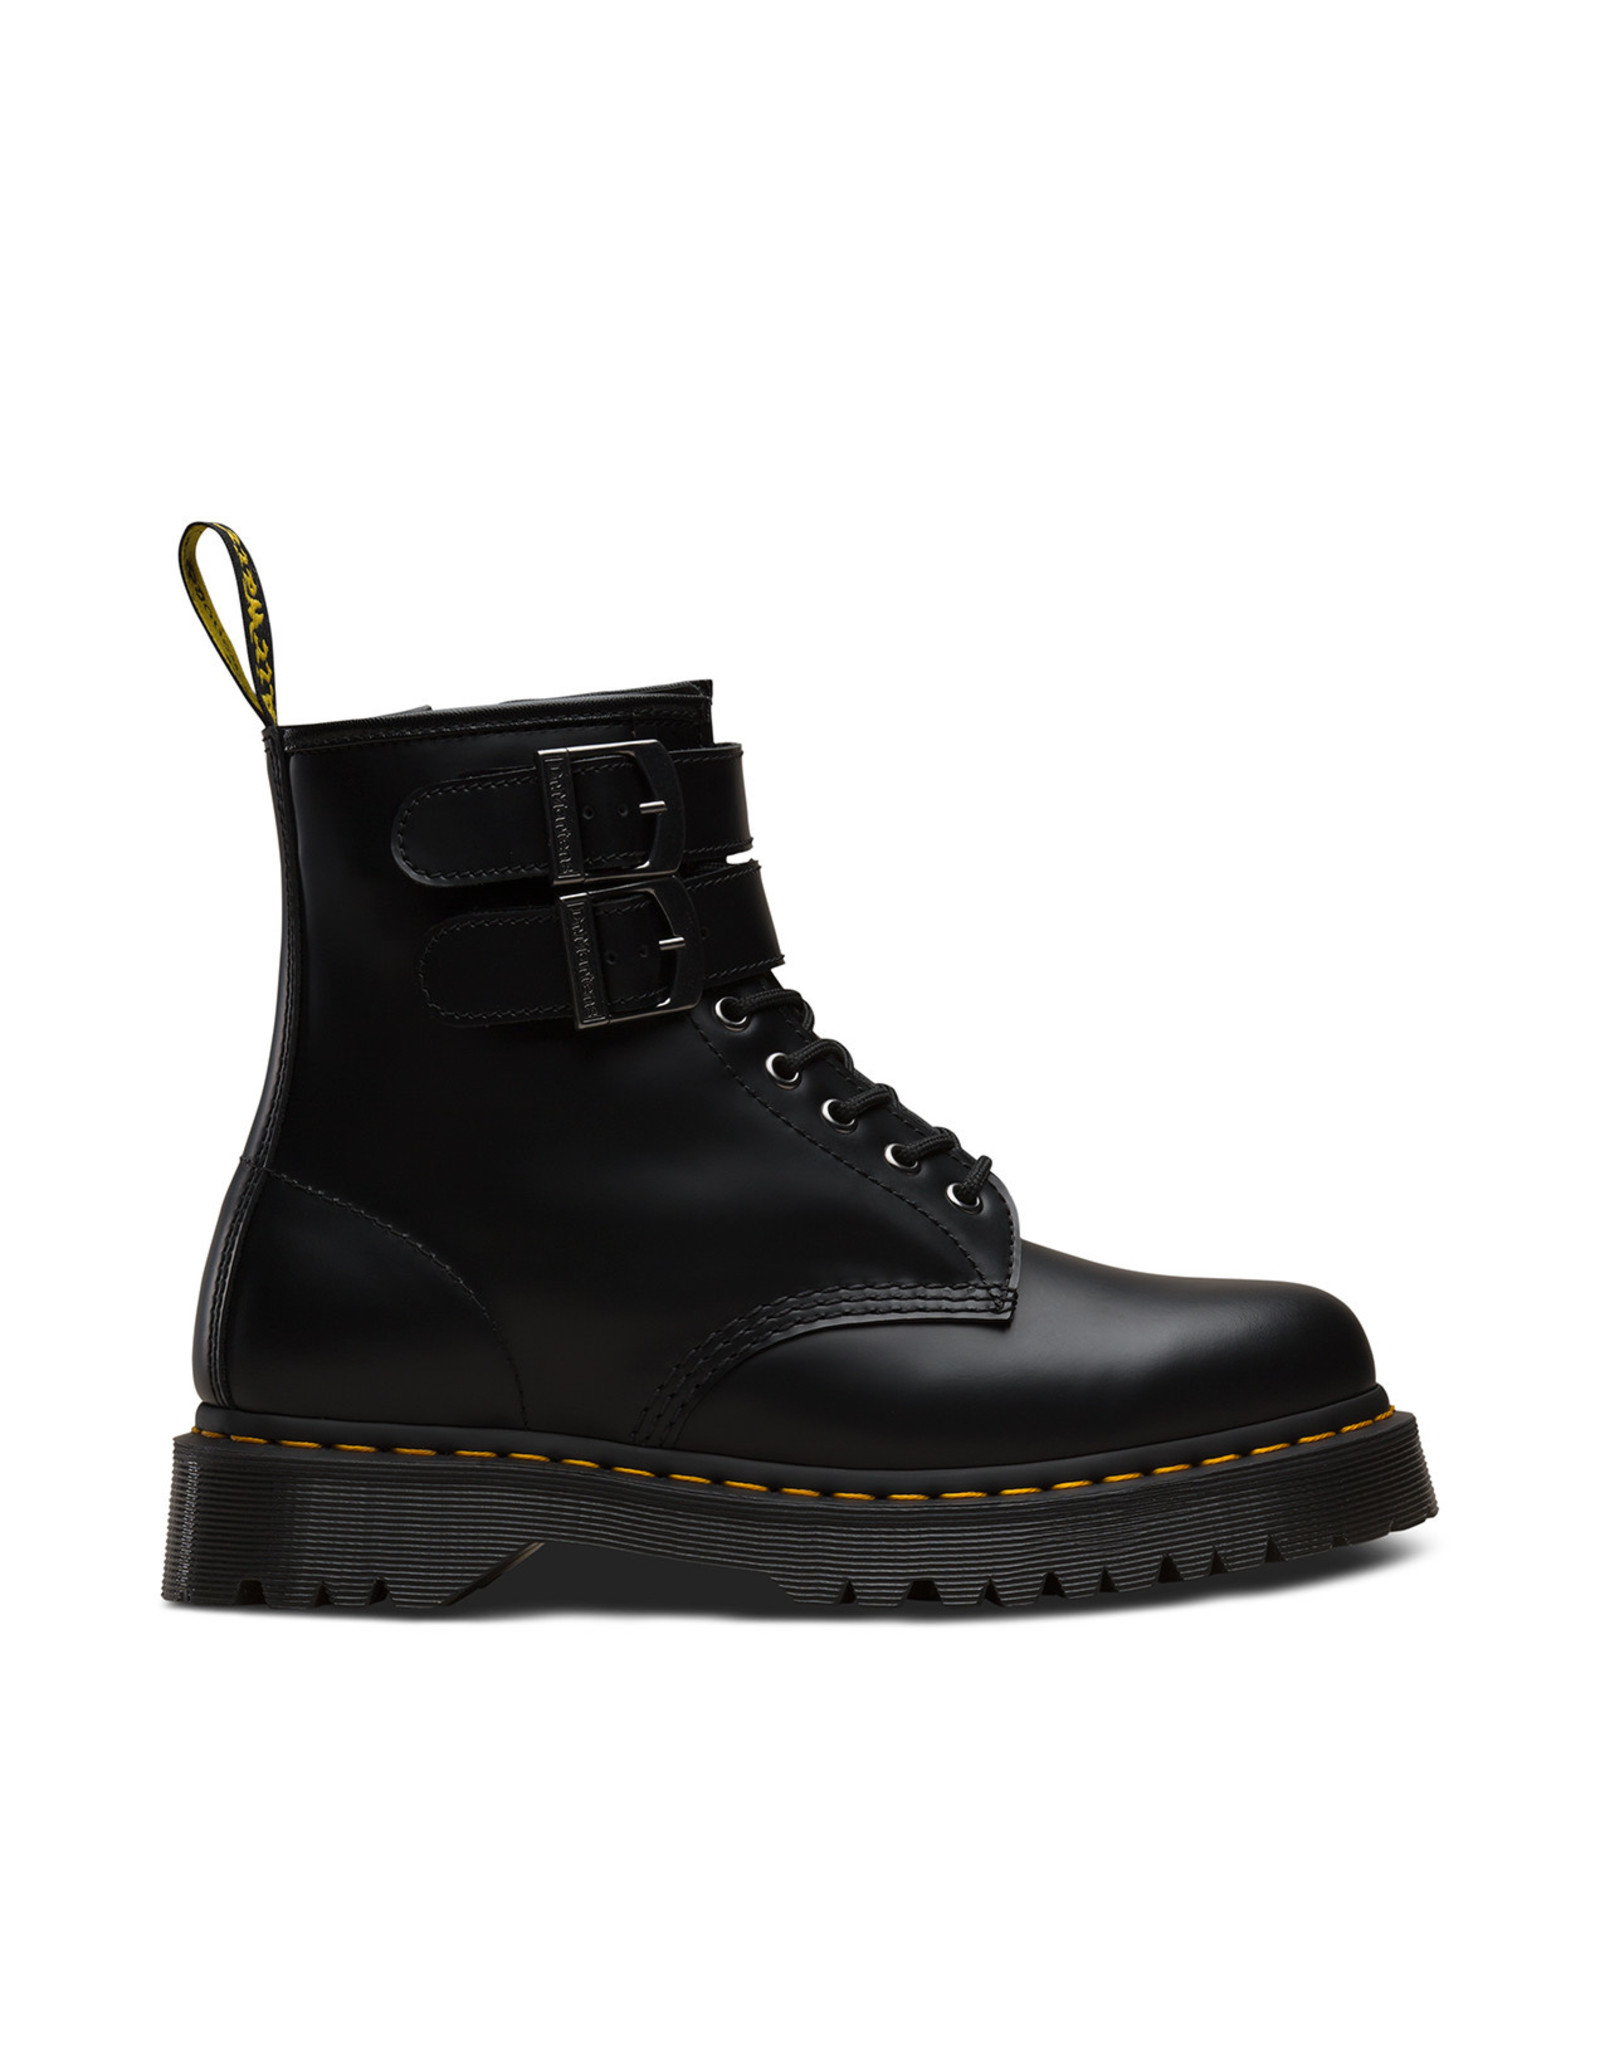 DR. MARTENS 1460 ALTERNATIVE BLACK SMOOTH 815BX-R24633001